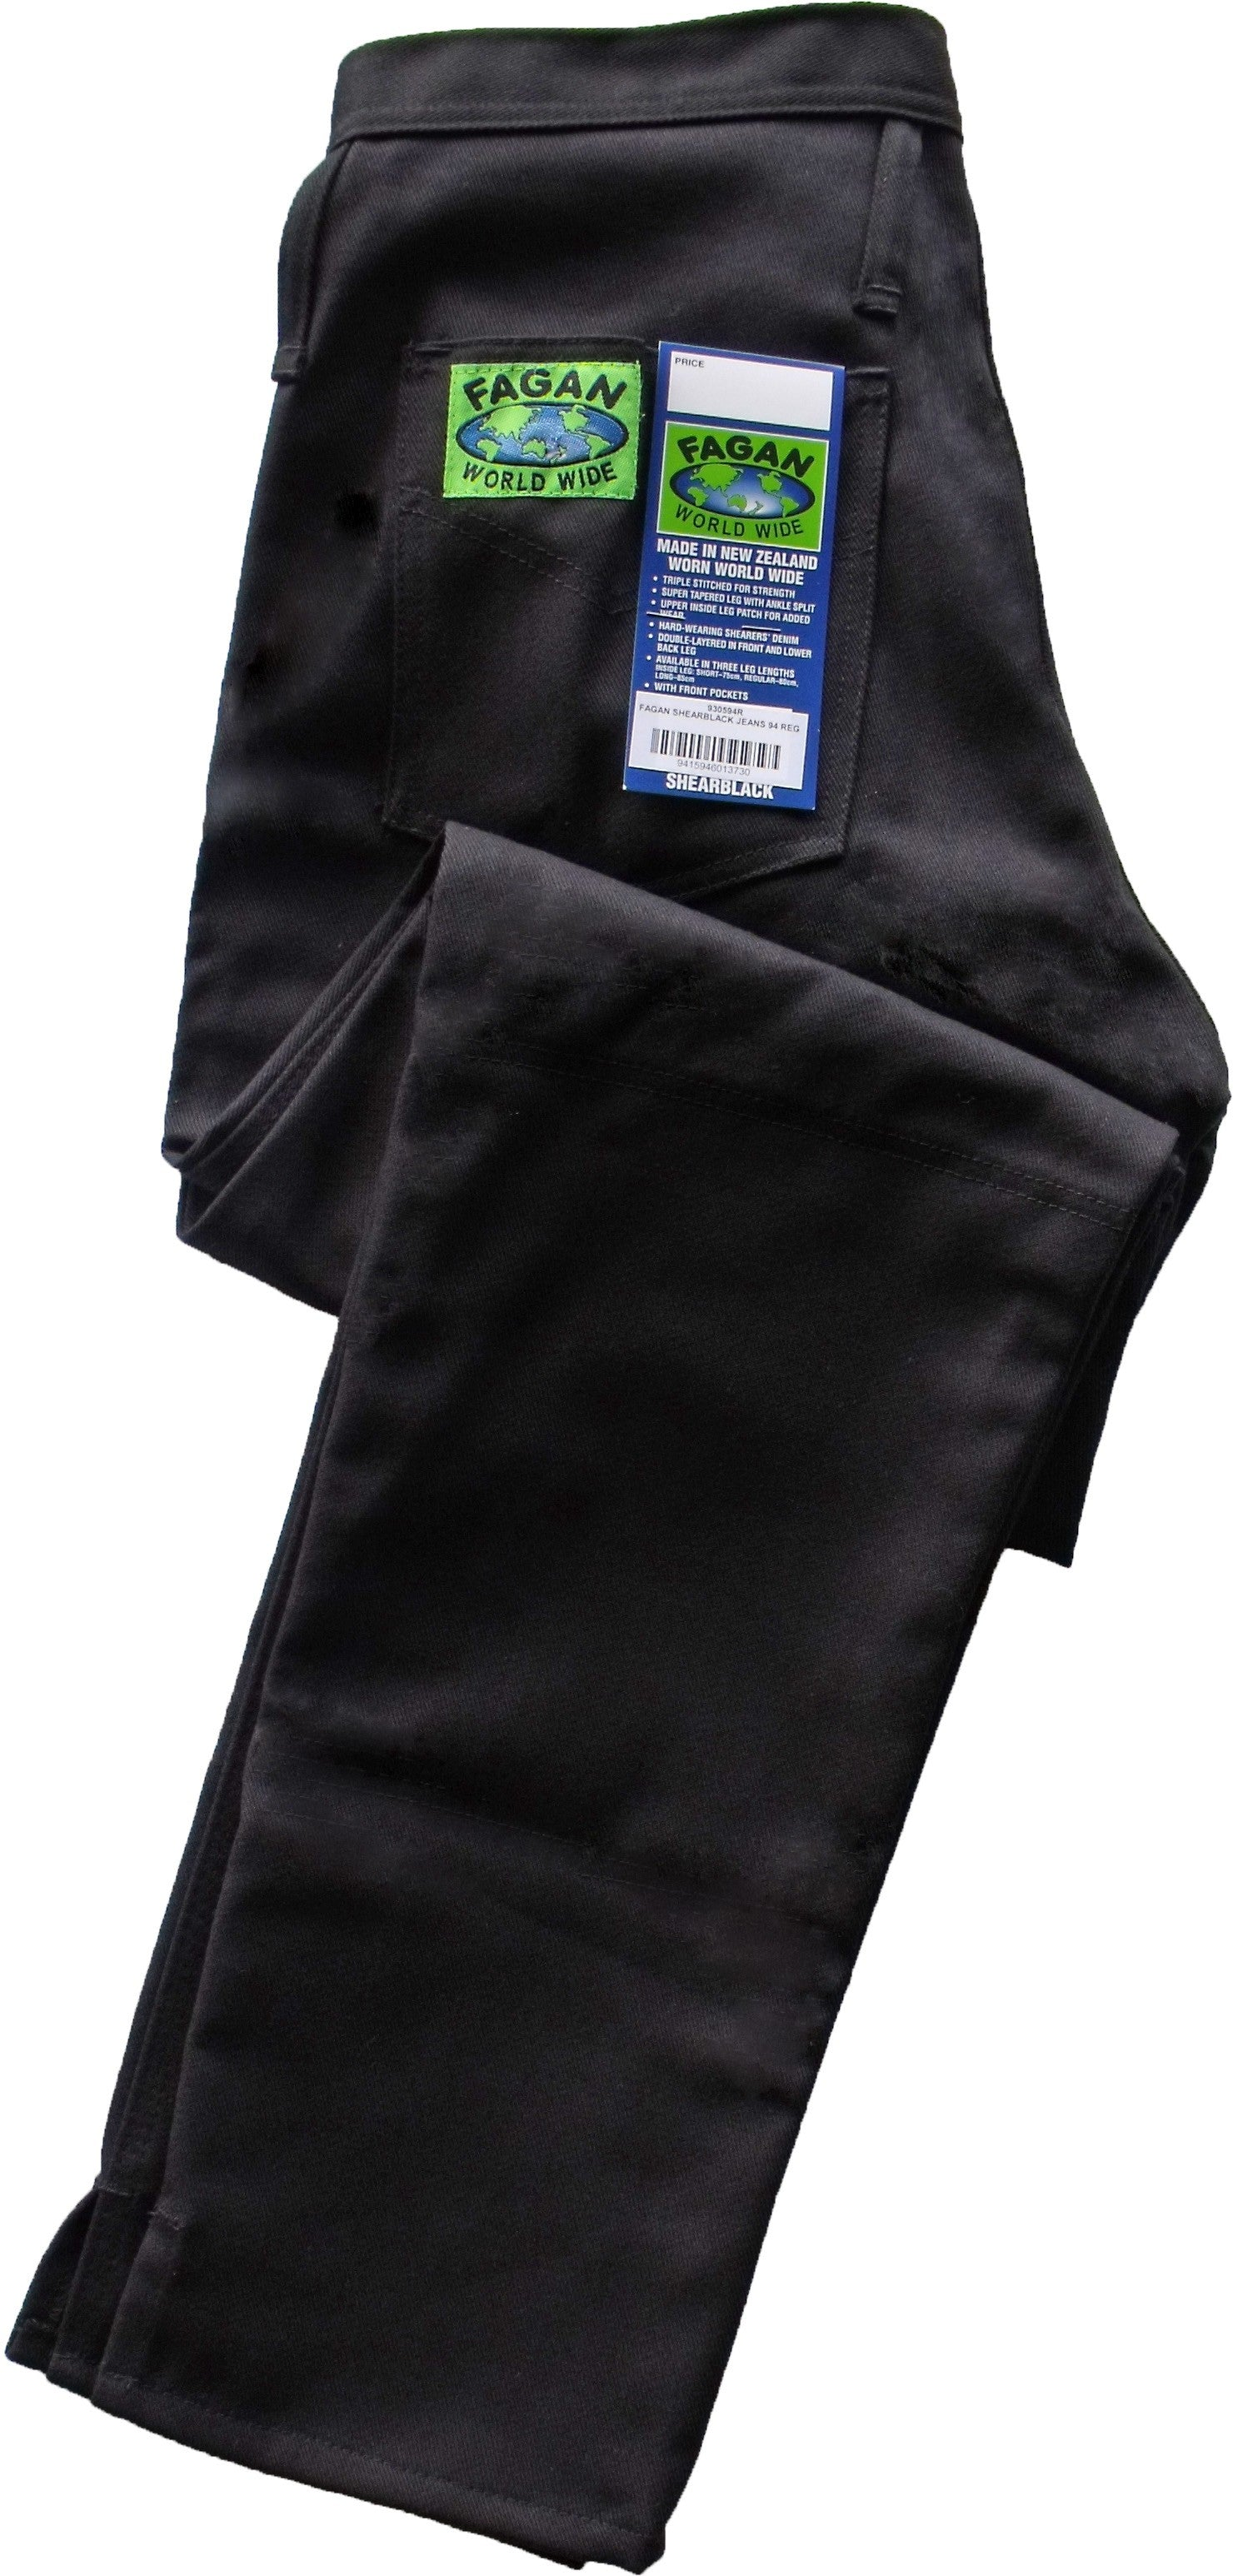 Fagan Shearblack trousers